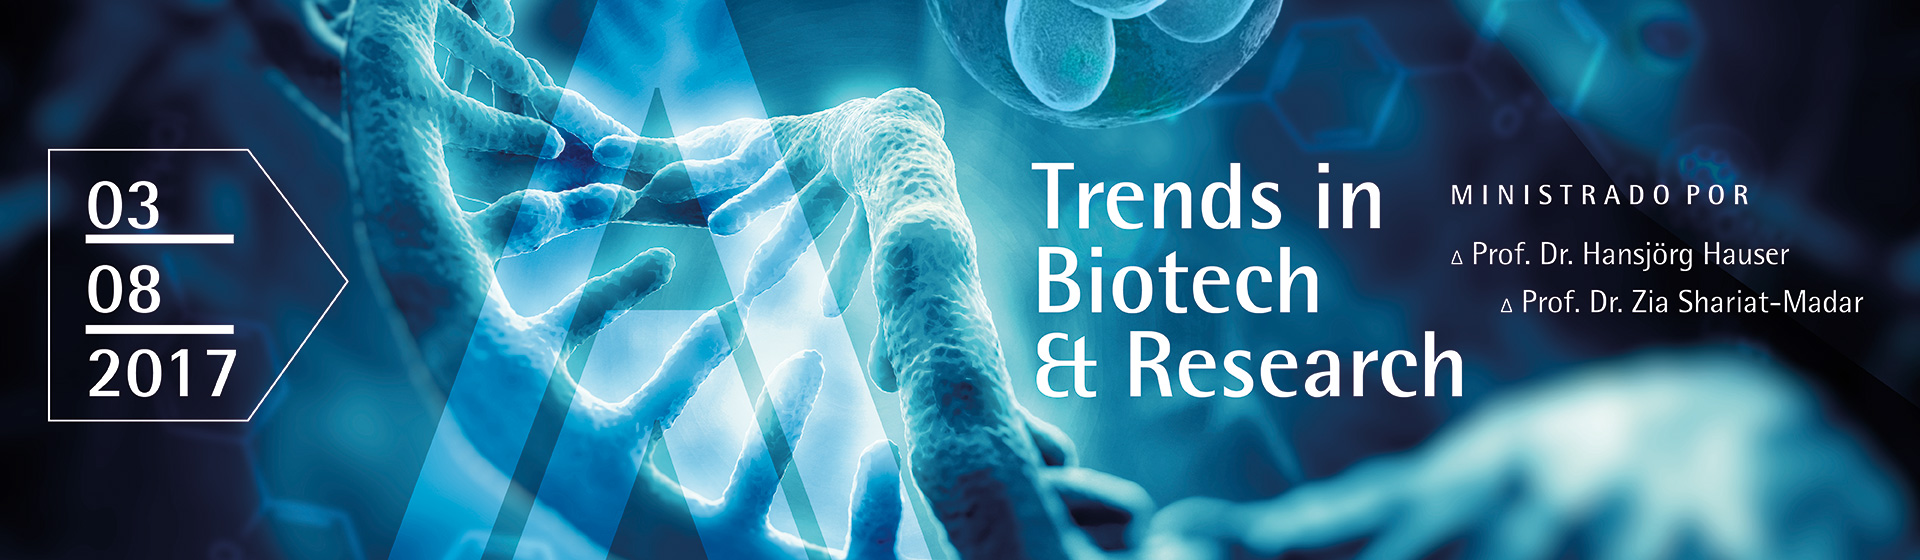 Palestra: Trends in Biotech & Research